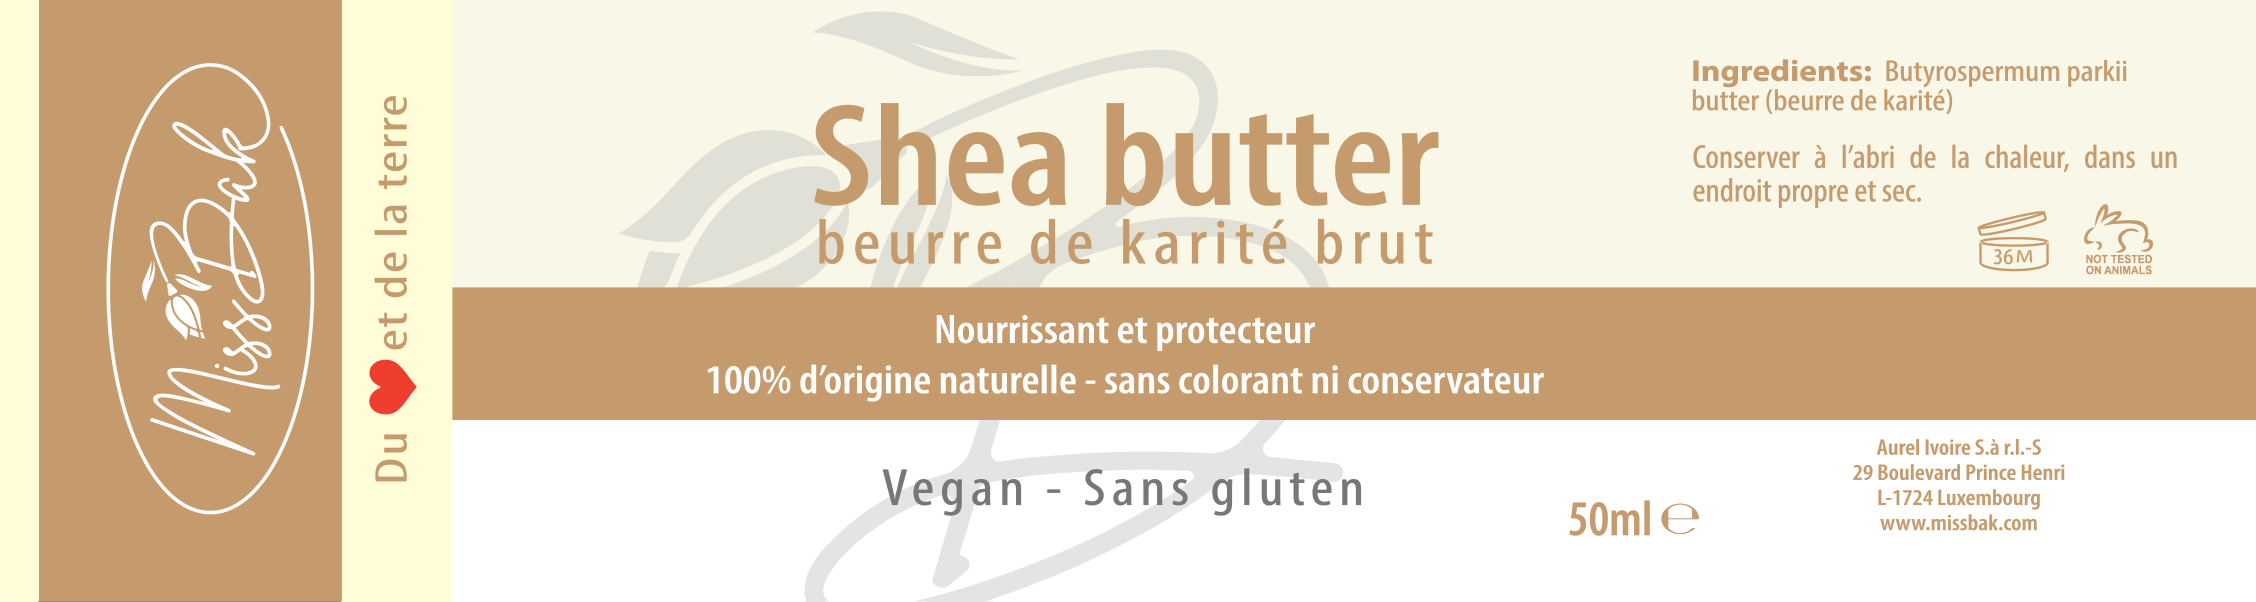 Packaging  for natural and ethical cosmetics products